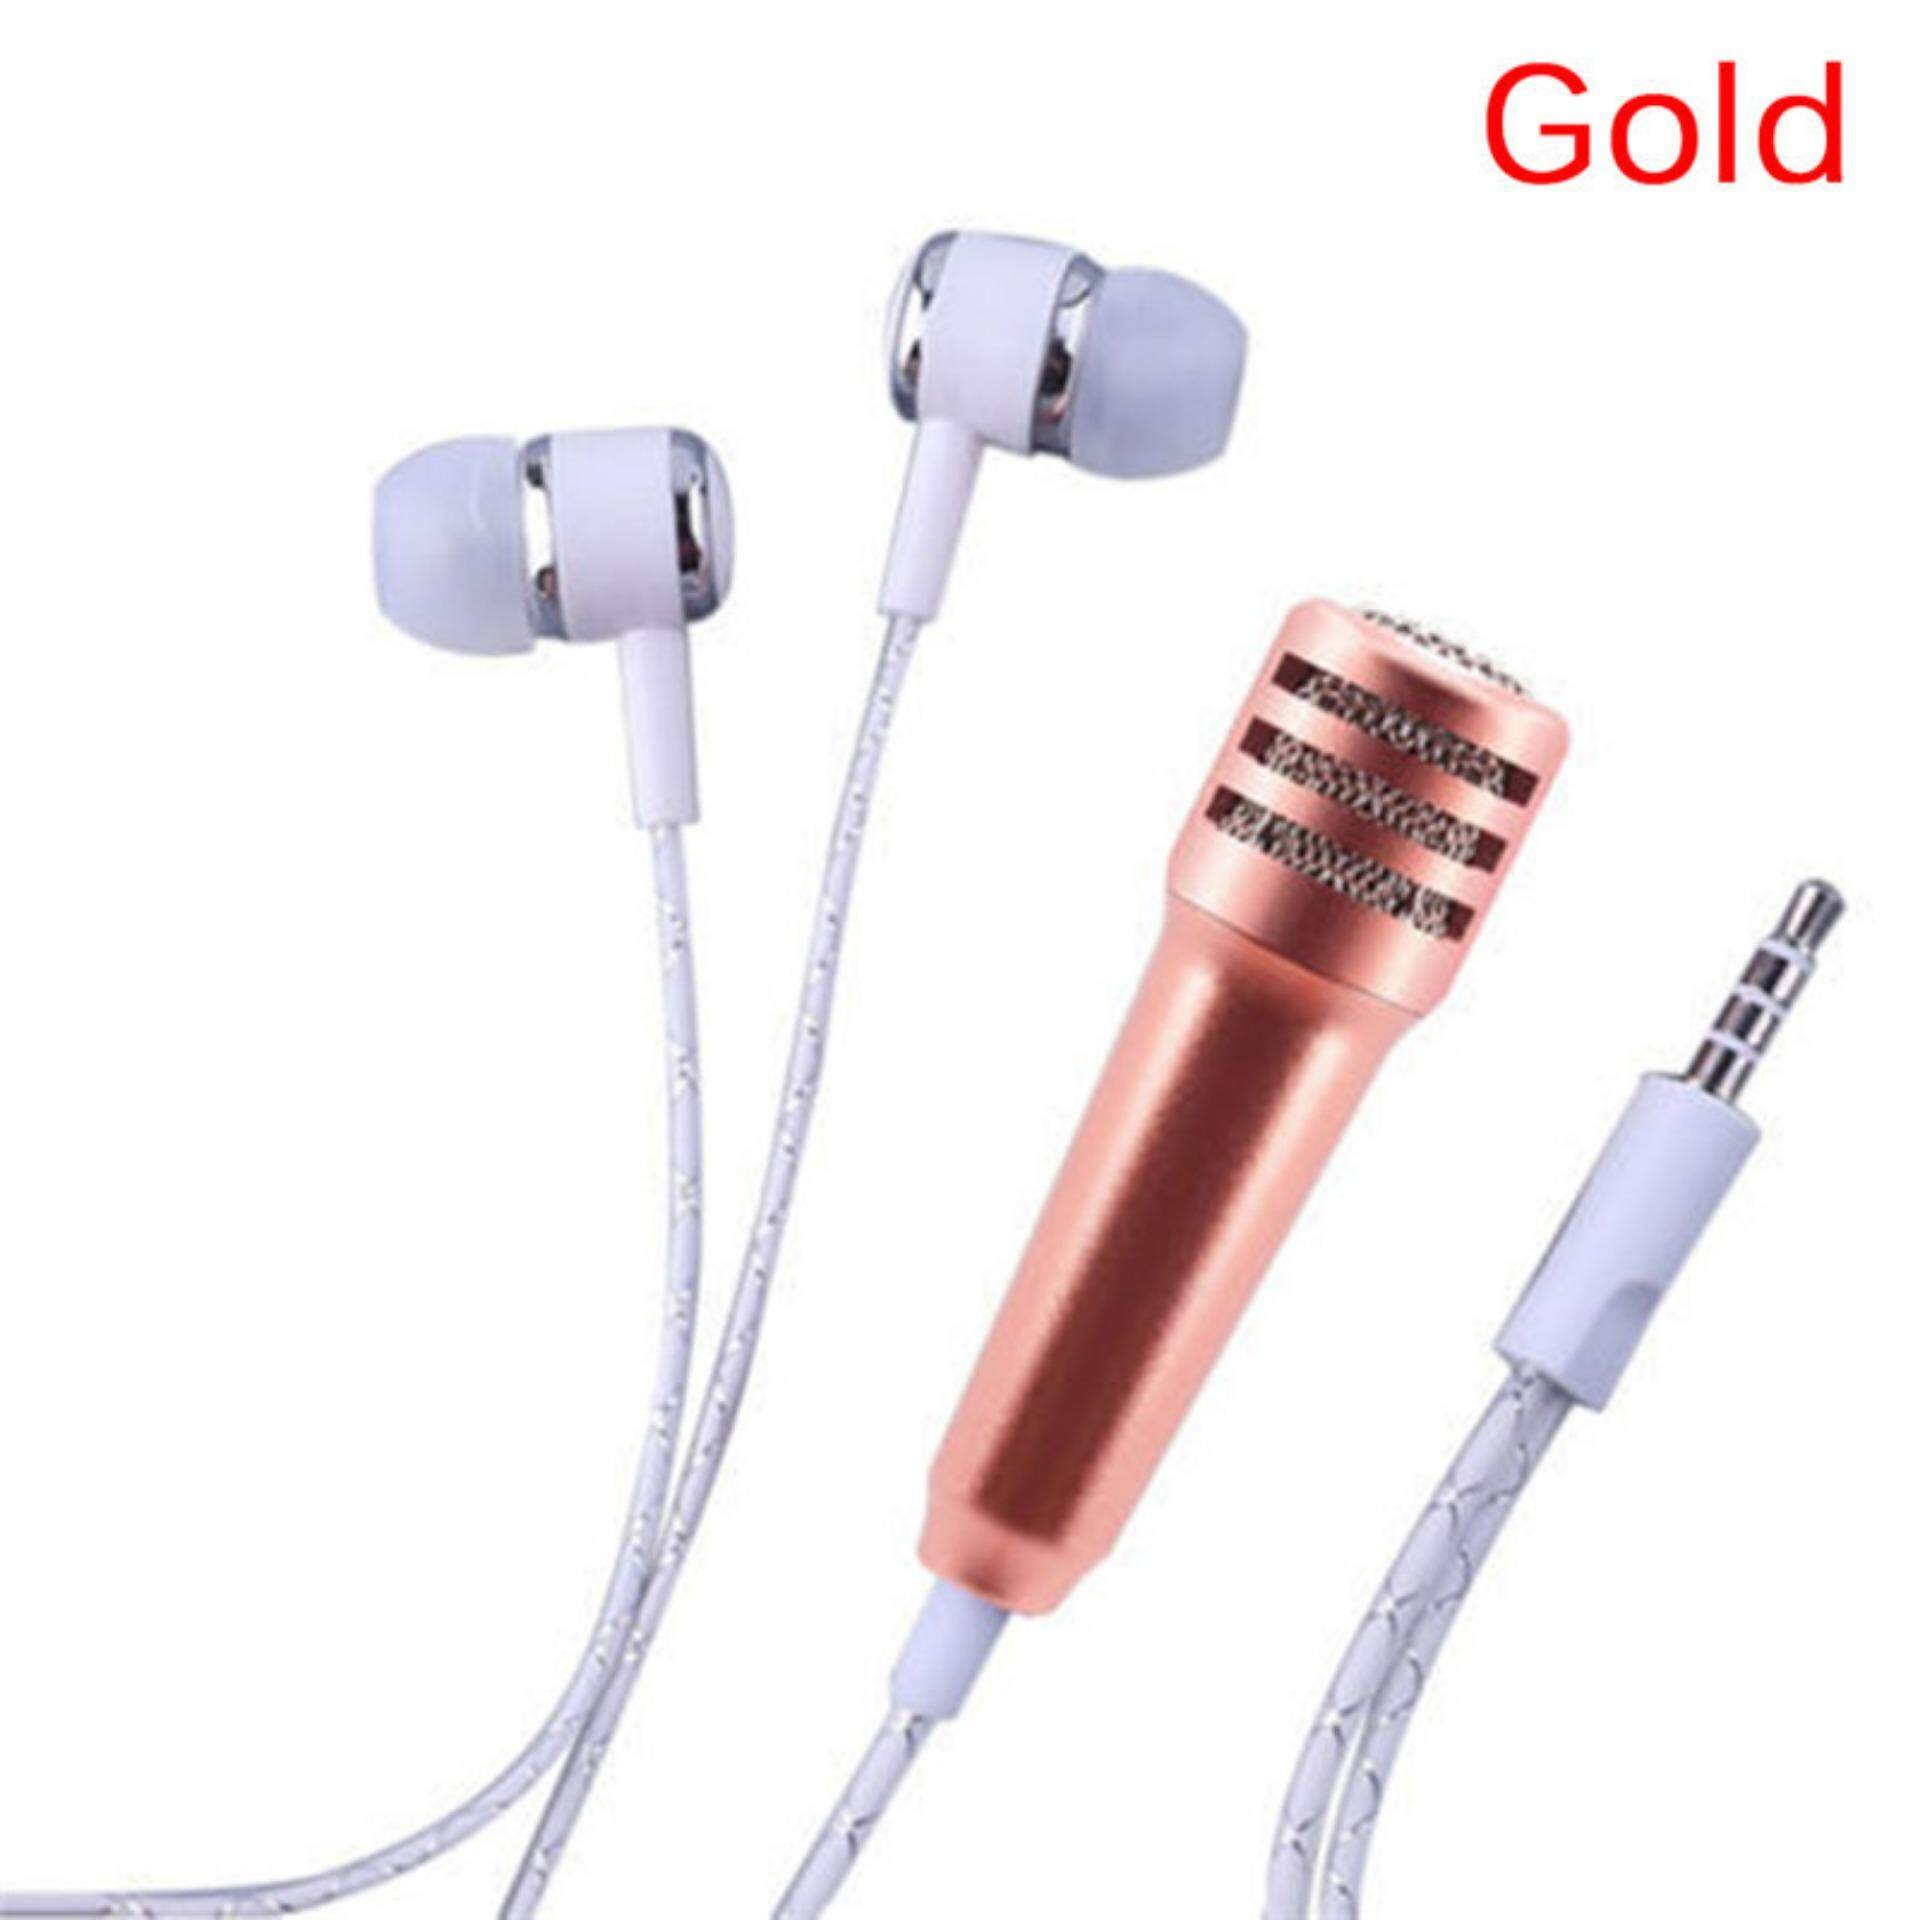 Mini Microphone Smule Karaoke Mic For Android Ios Pc Pinksilver Dengan Headset Jack 35 With Earphone Mobile Phone Tablet Gold